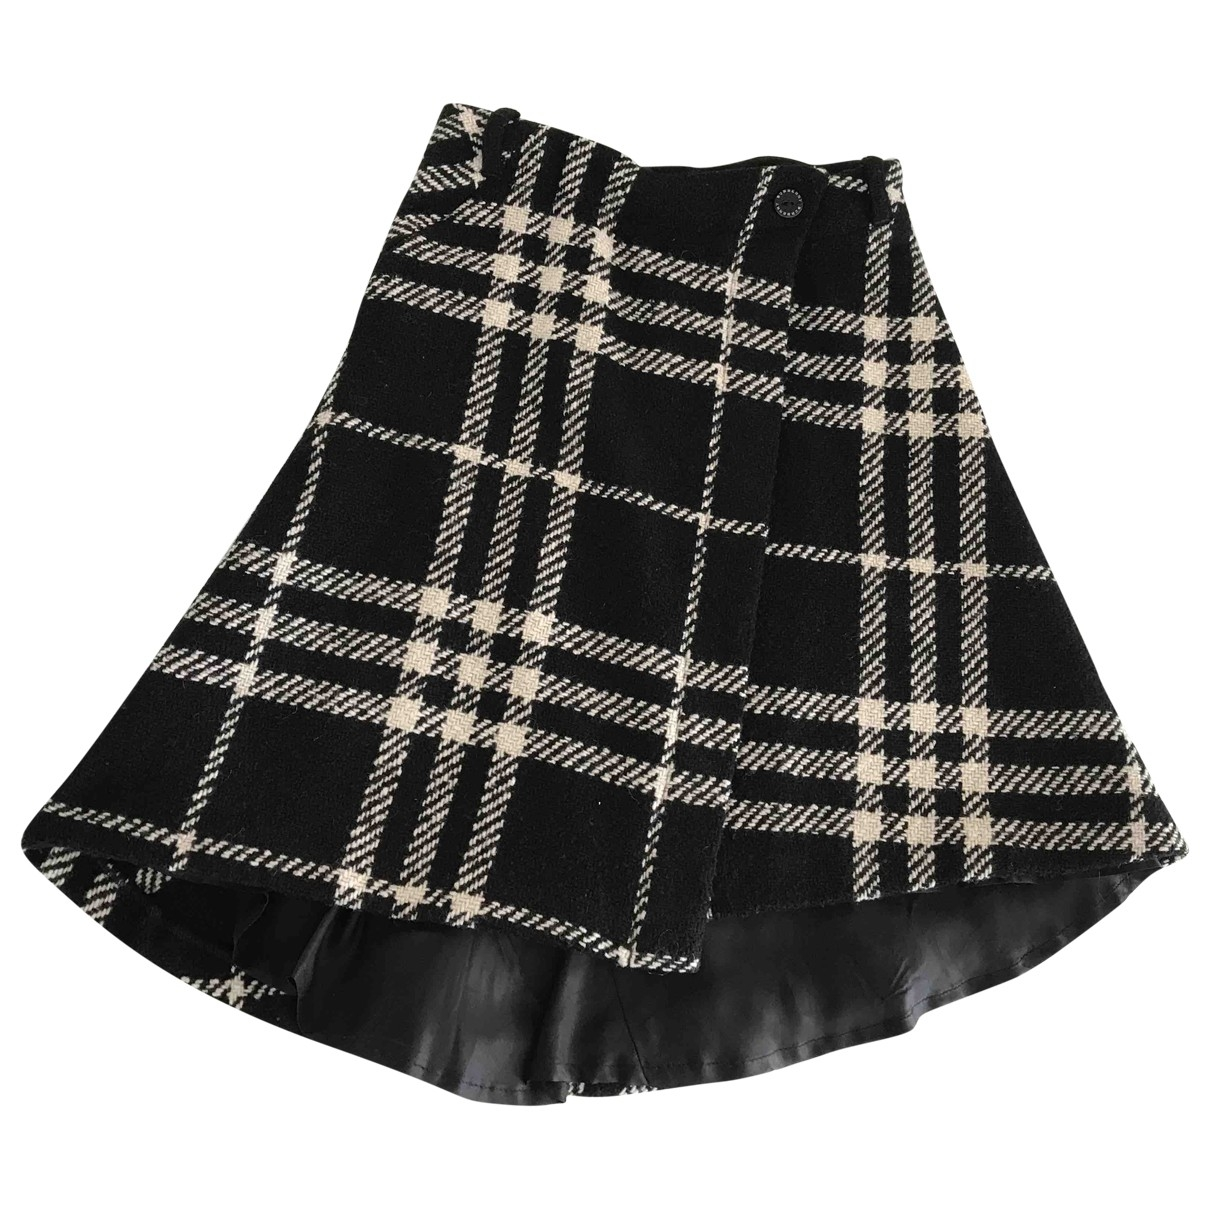 Burberry \N Black Wool skirt for Kids 8 years - up to 128cm FR